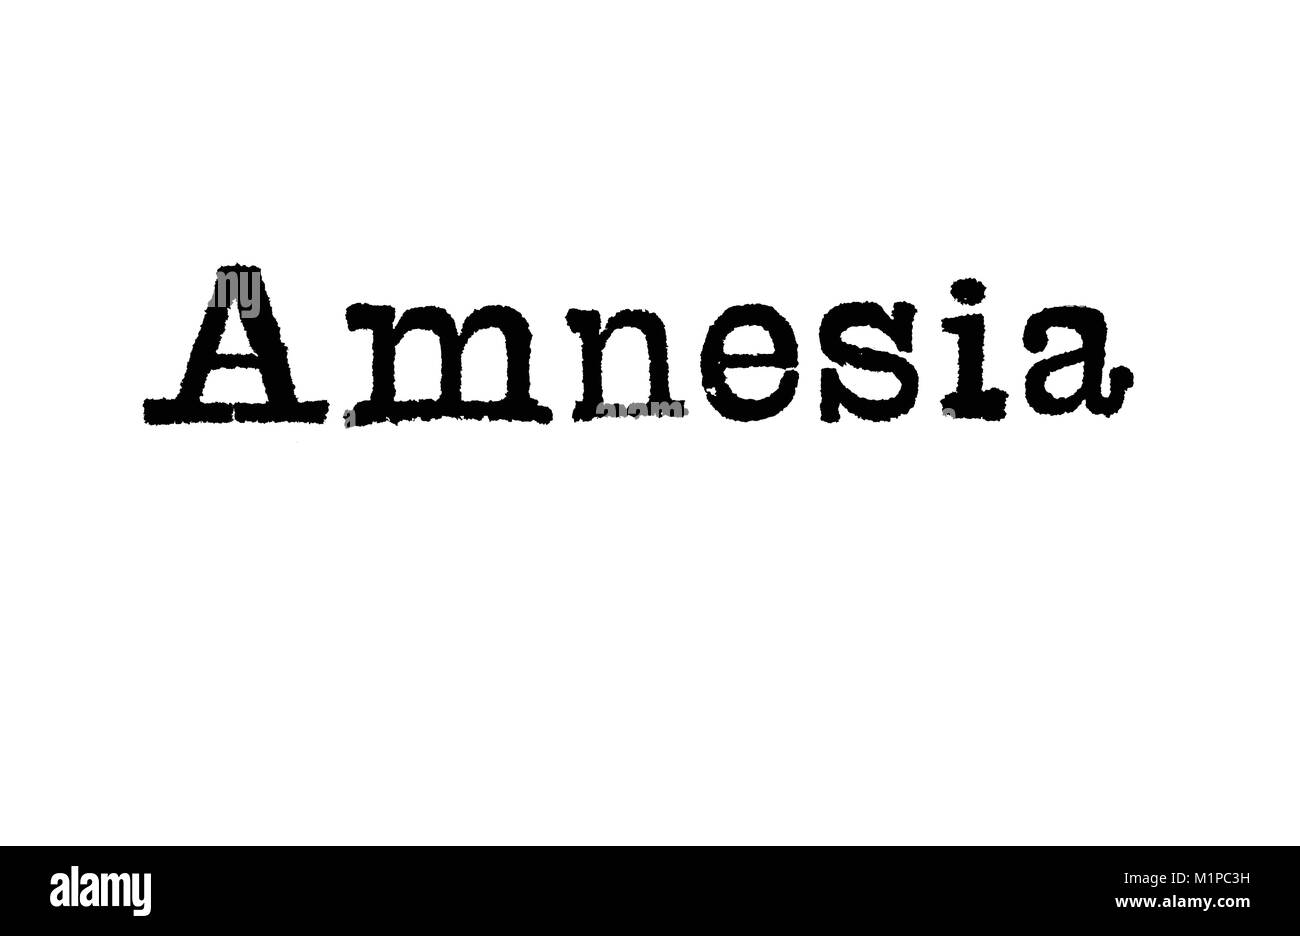 The word Amnesia from a typewriter on a white background - Stock Image